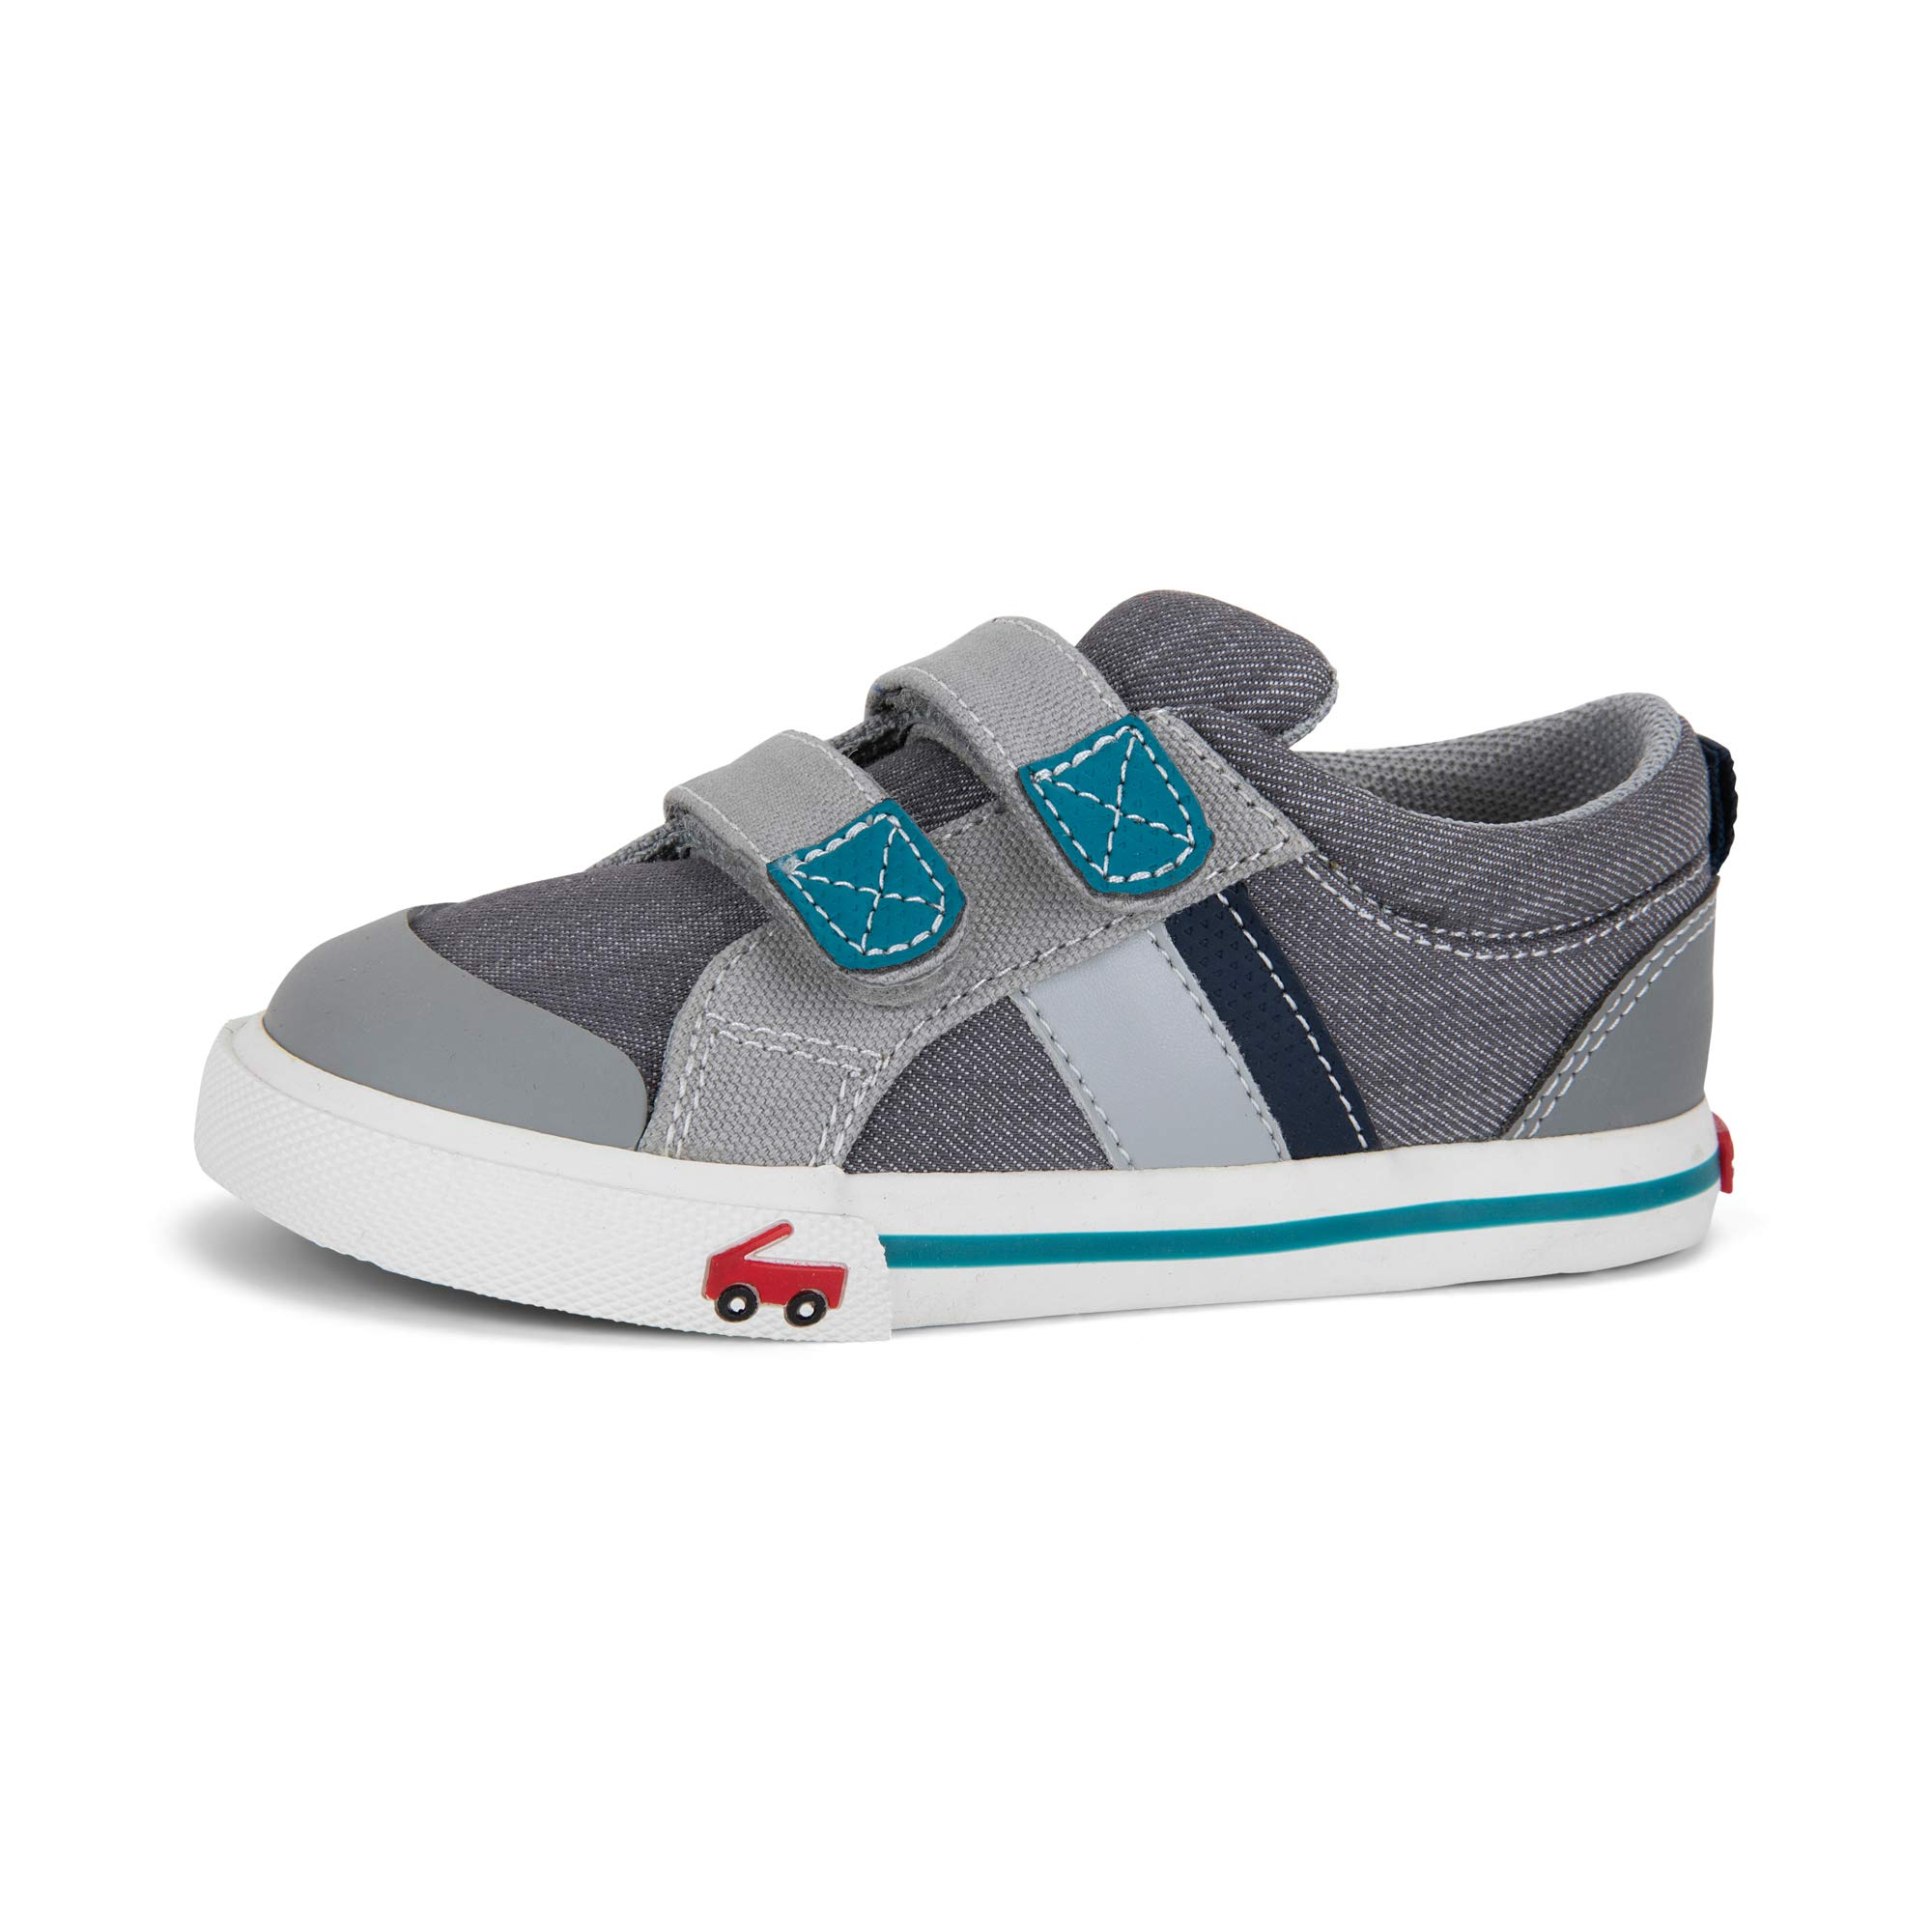 See Kai Run Boy's Russell Sneaker, Gray/Teal, 6 M US Toddler